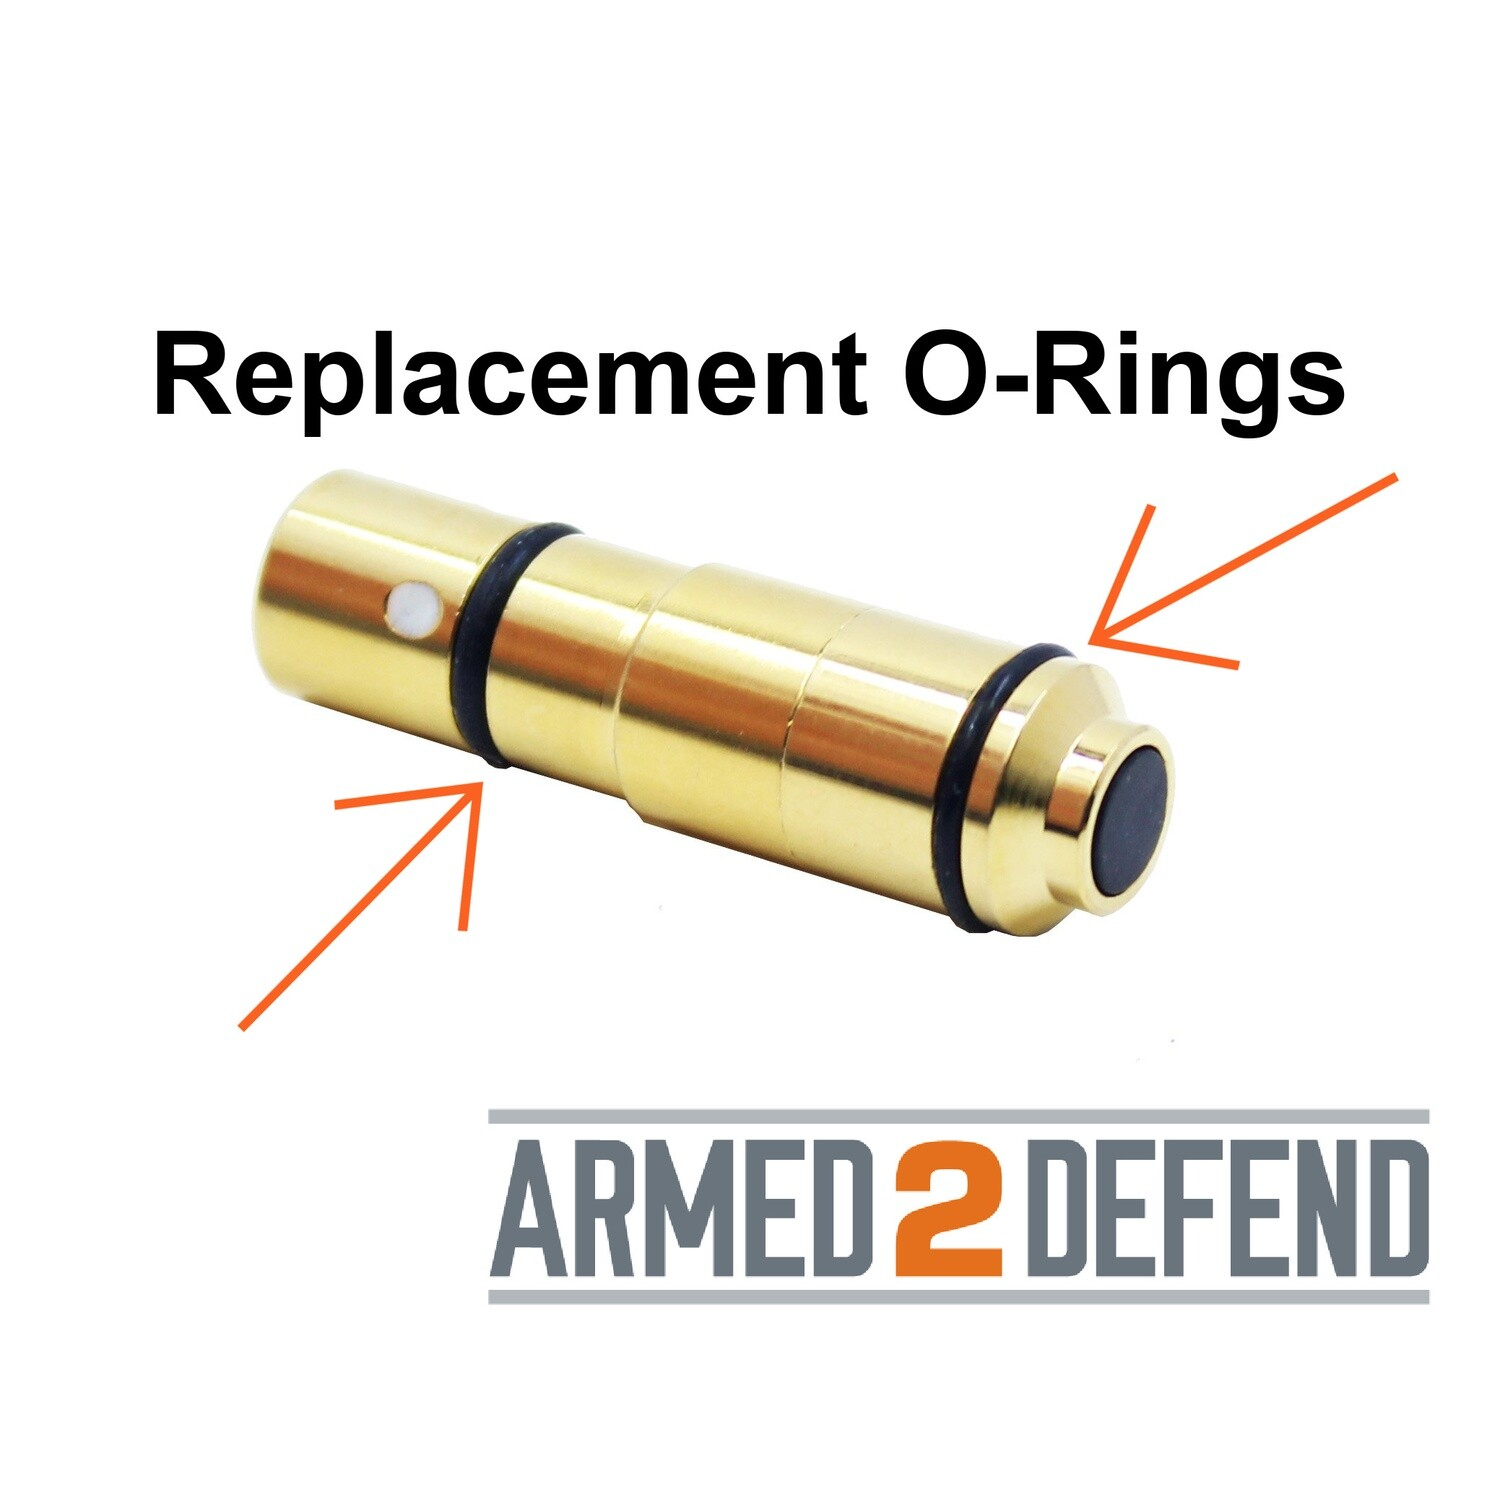 Replacement O-rings for Pink Rhino Laser Trainer - Free Shipping!